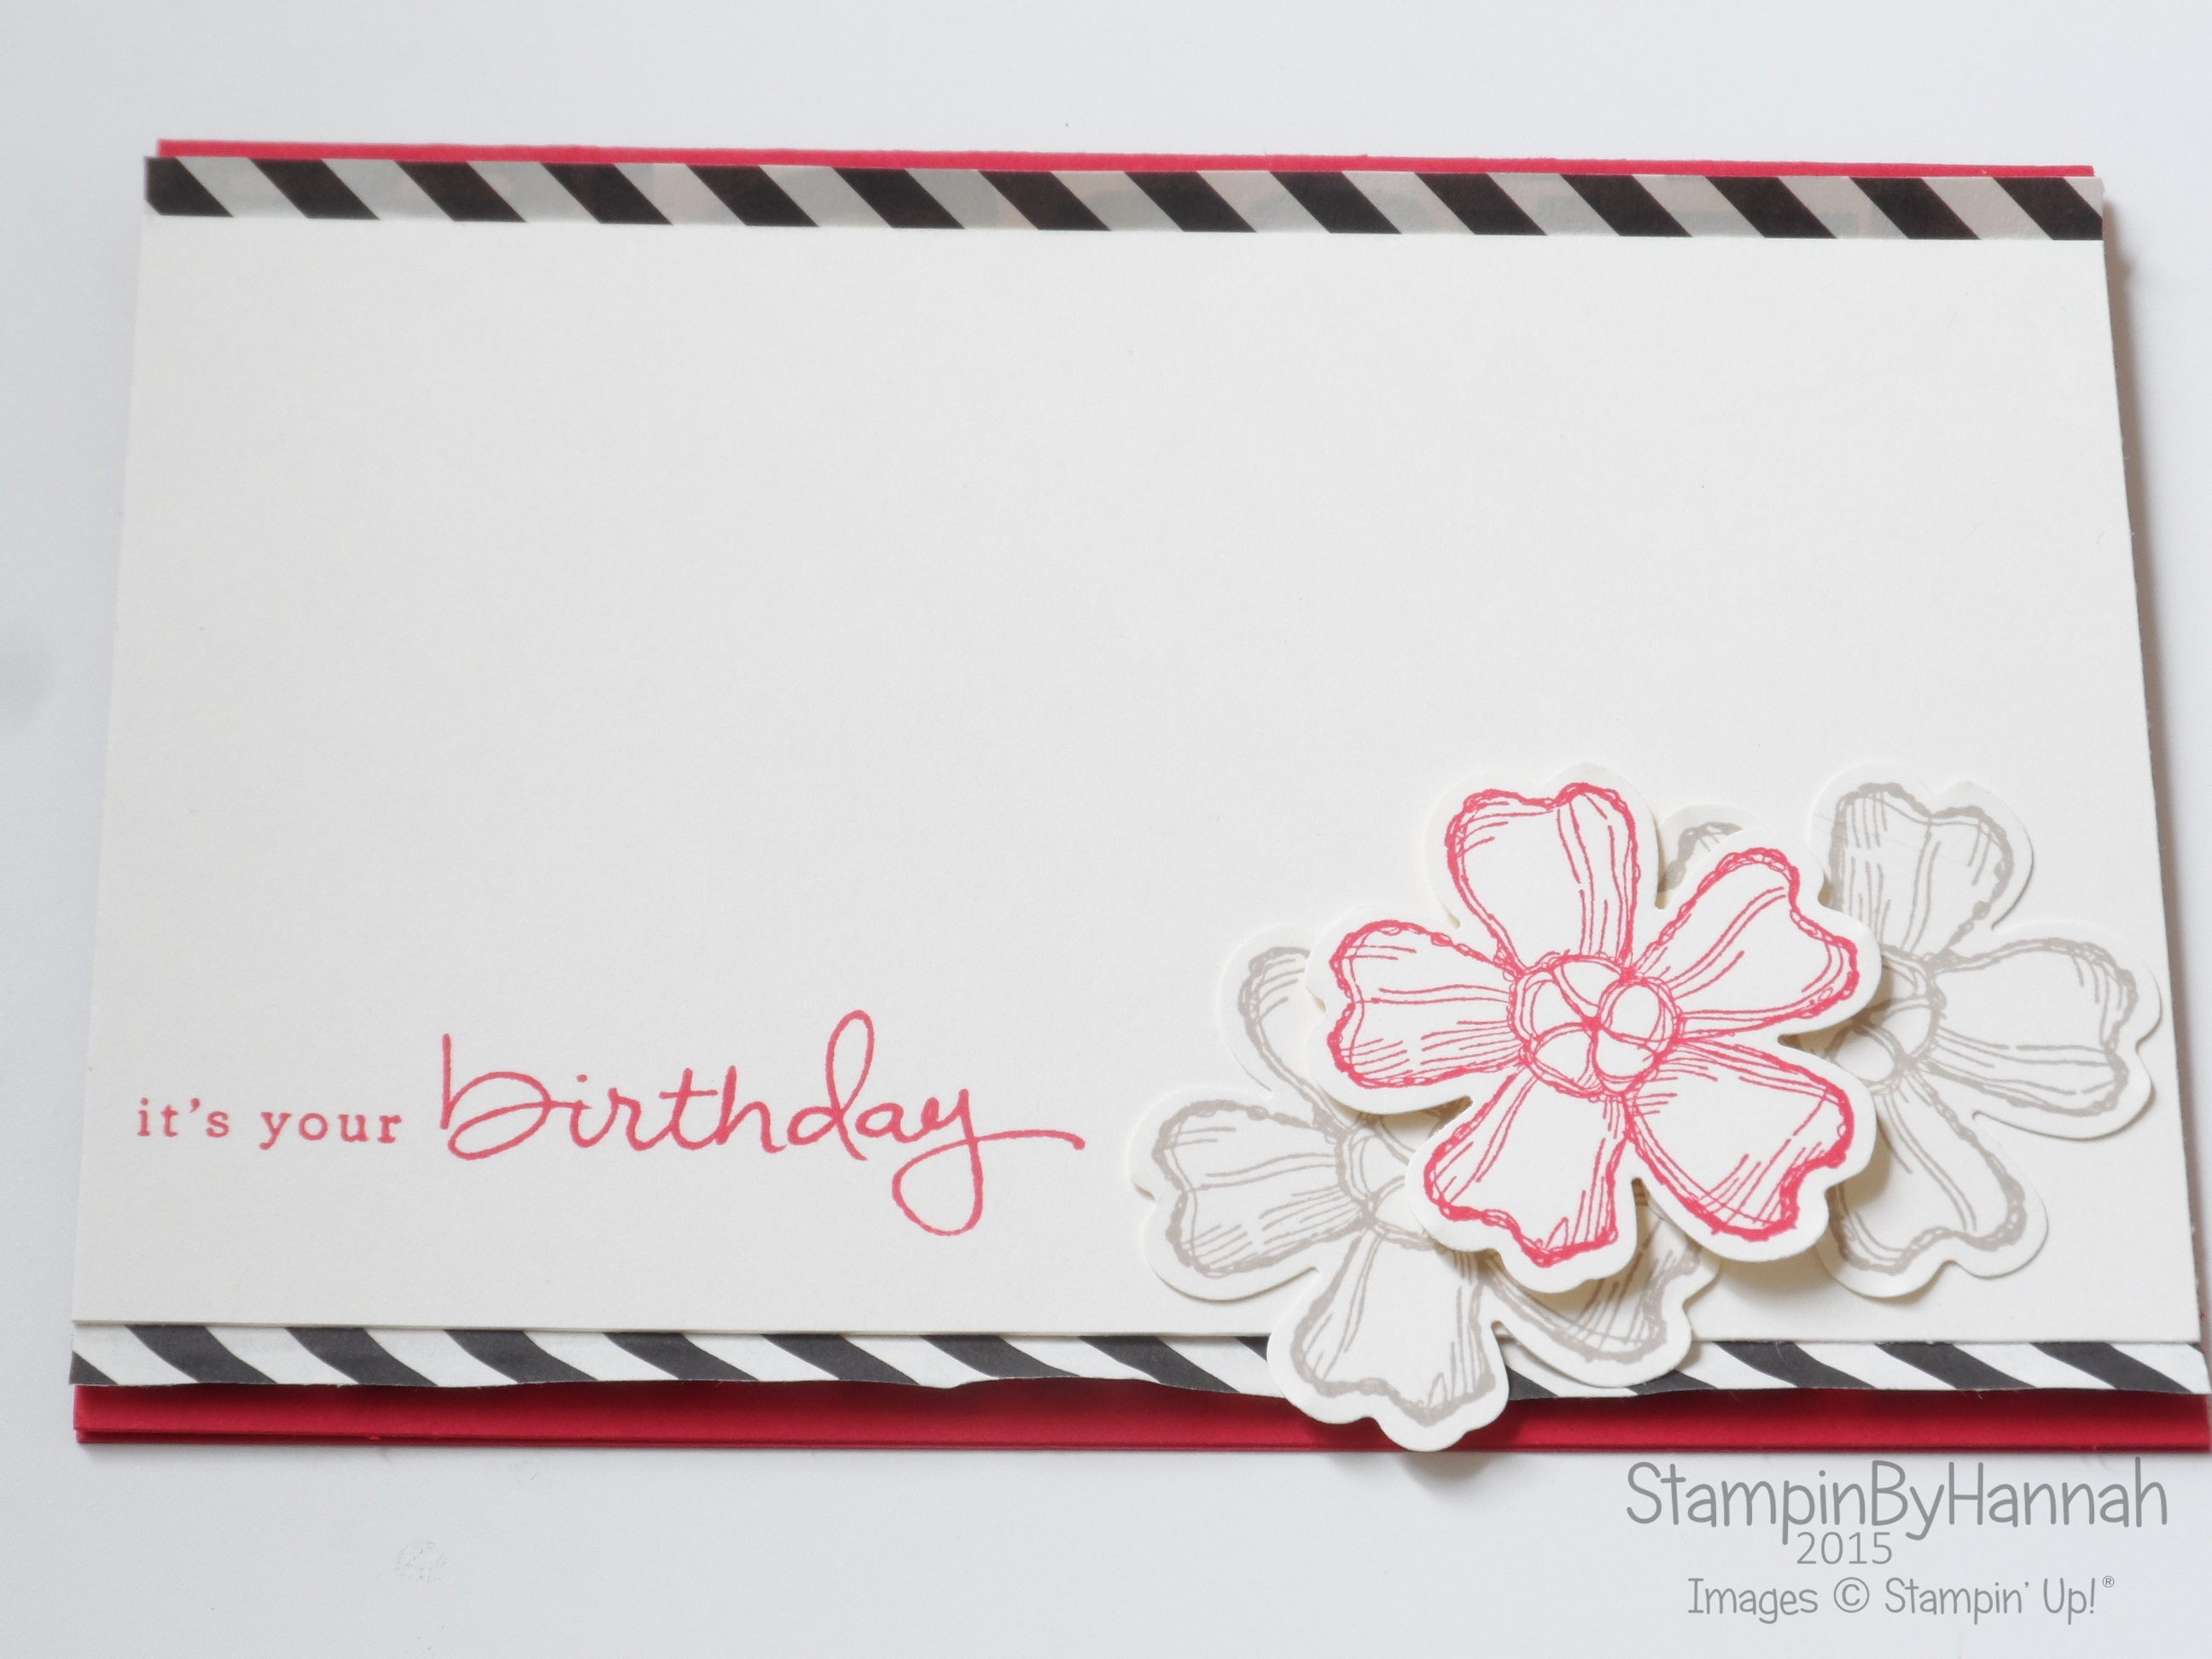 Freshly made sketches 191 its your birthday stampinbyhannah stampin up uk freshly made sketches endless birthday wishes bookmarktalkfo Gallery